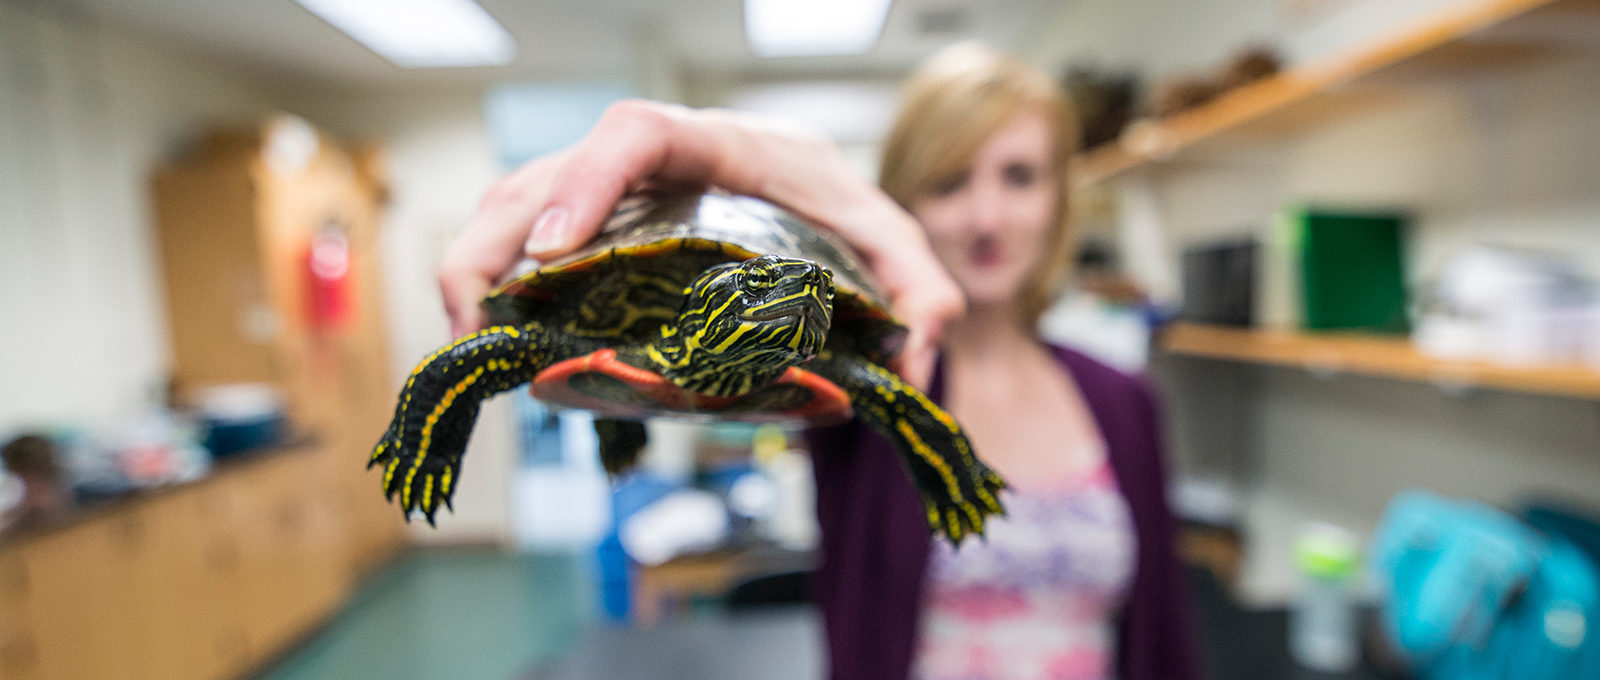 Student holding turtle